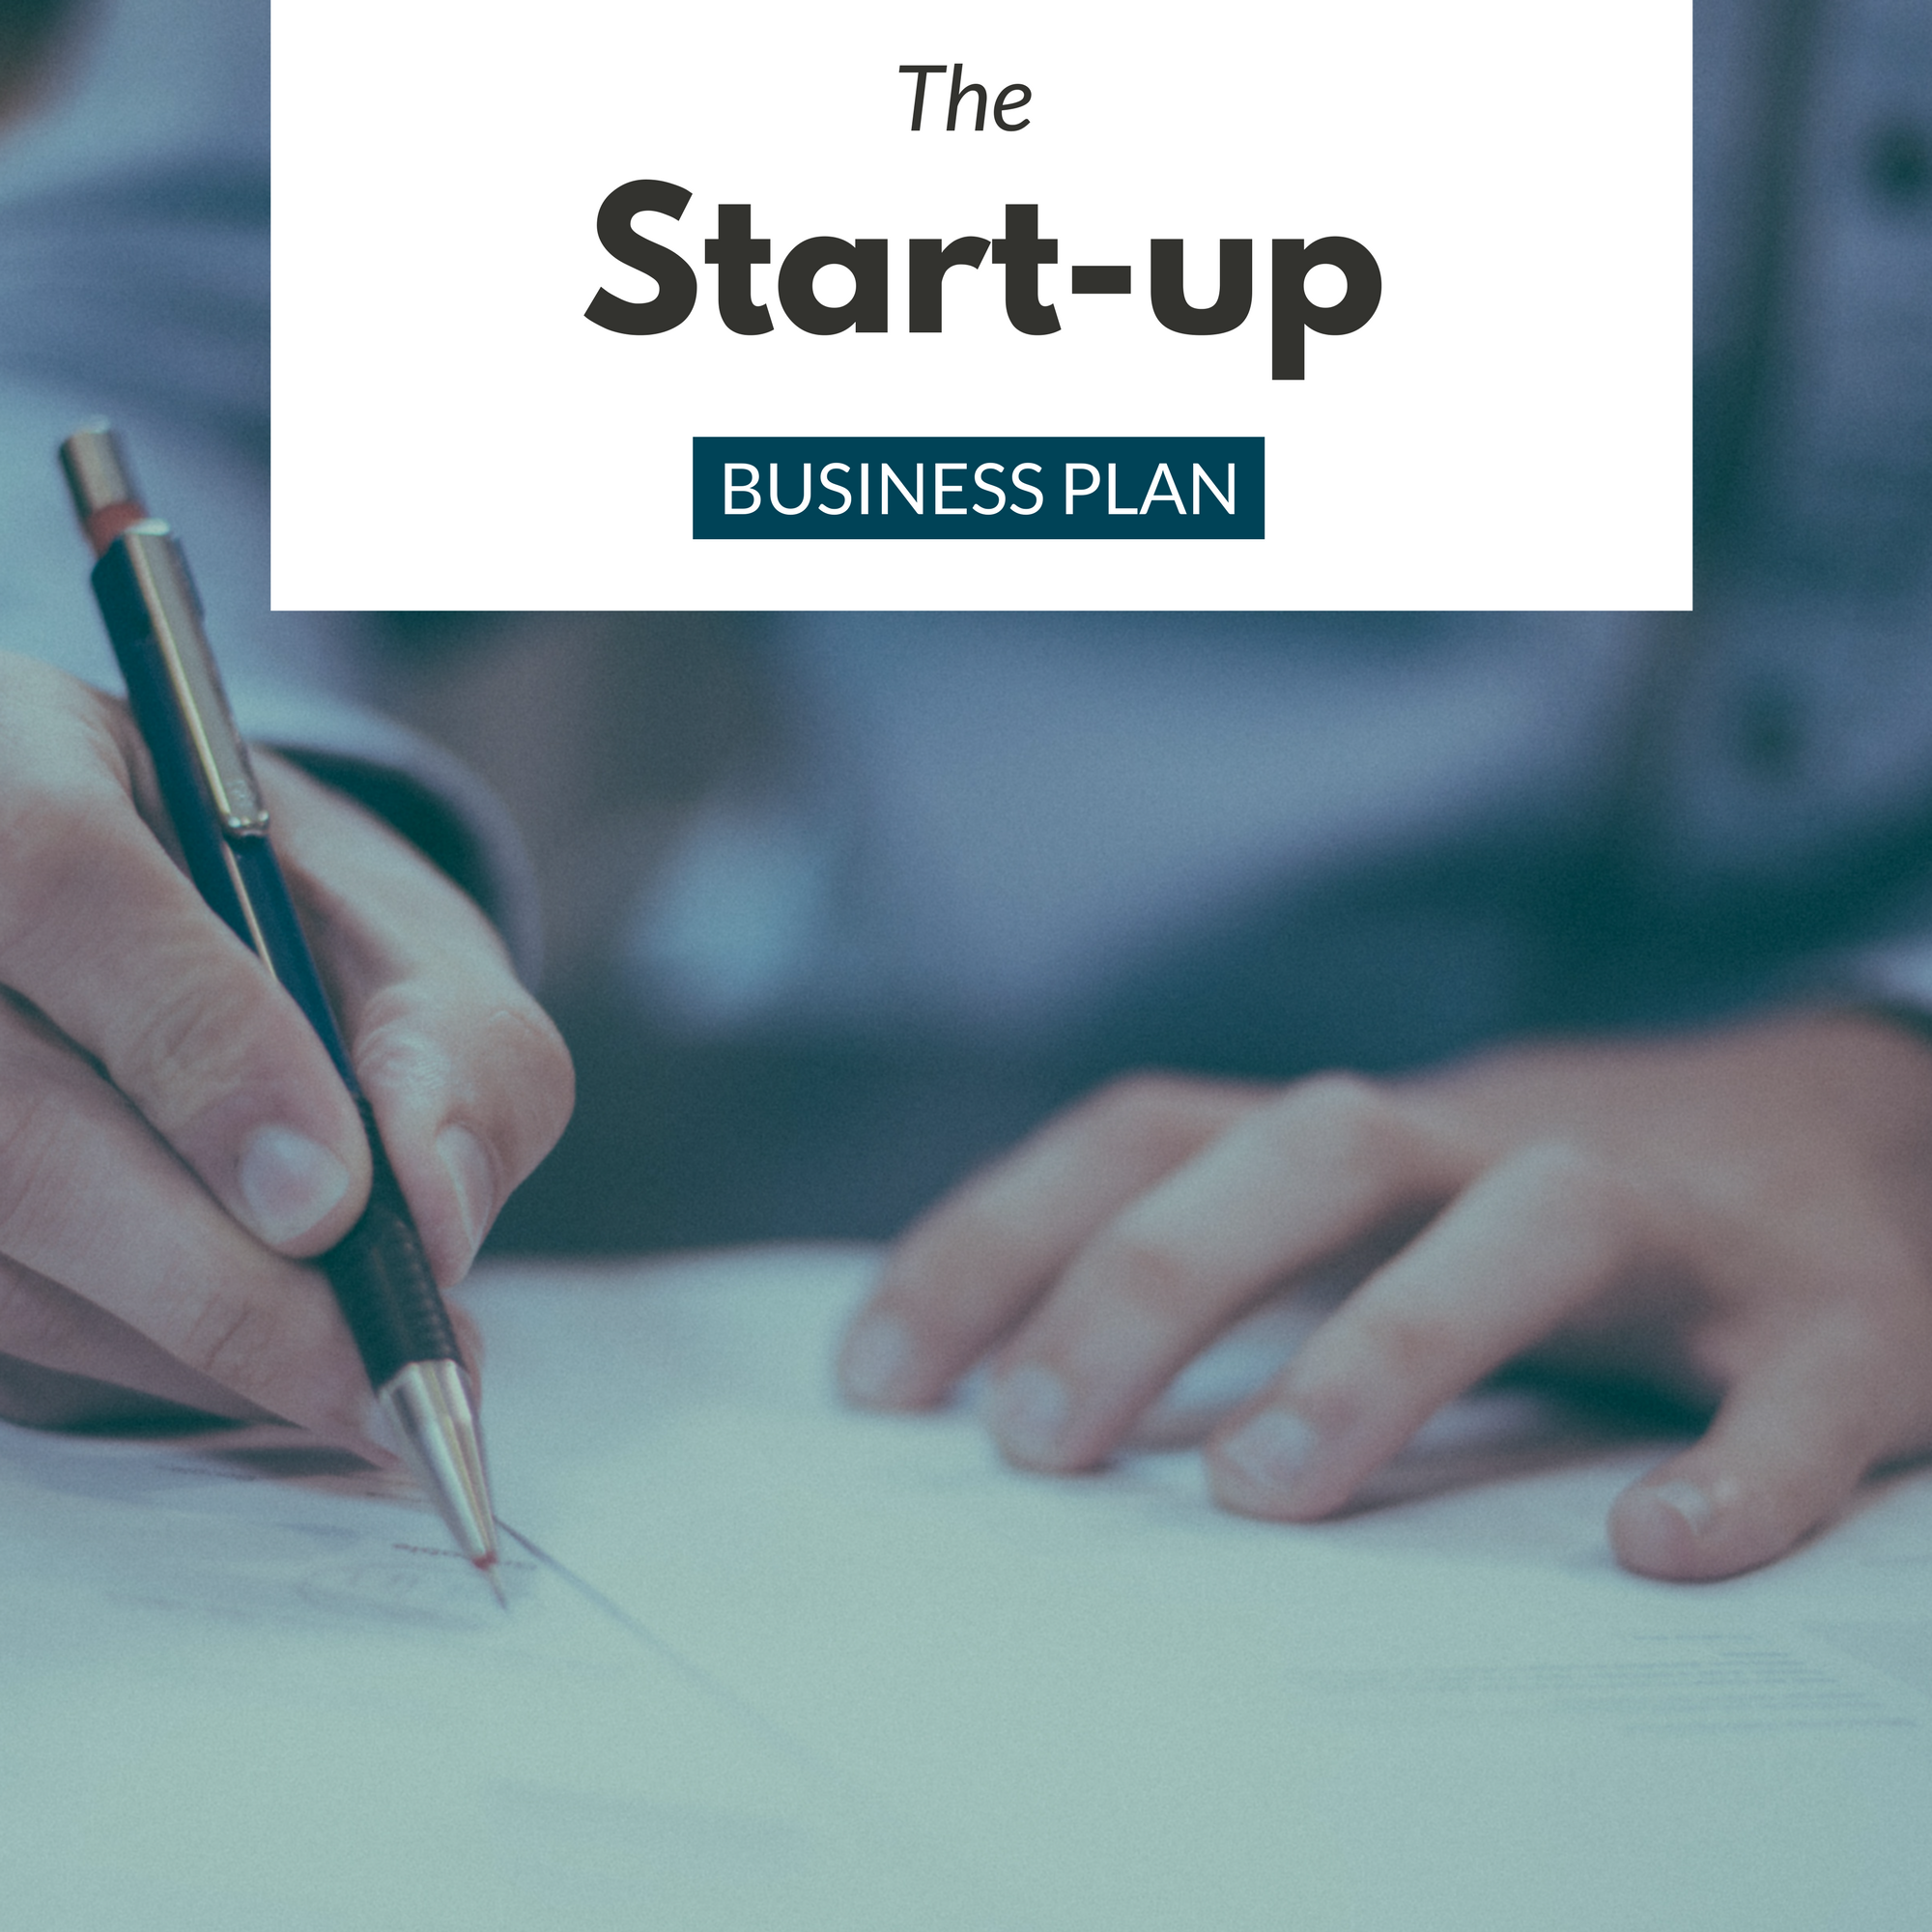 Start Up Business Plans by Business Plan Stan (1).png